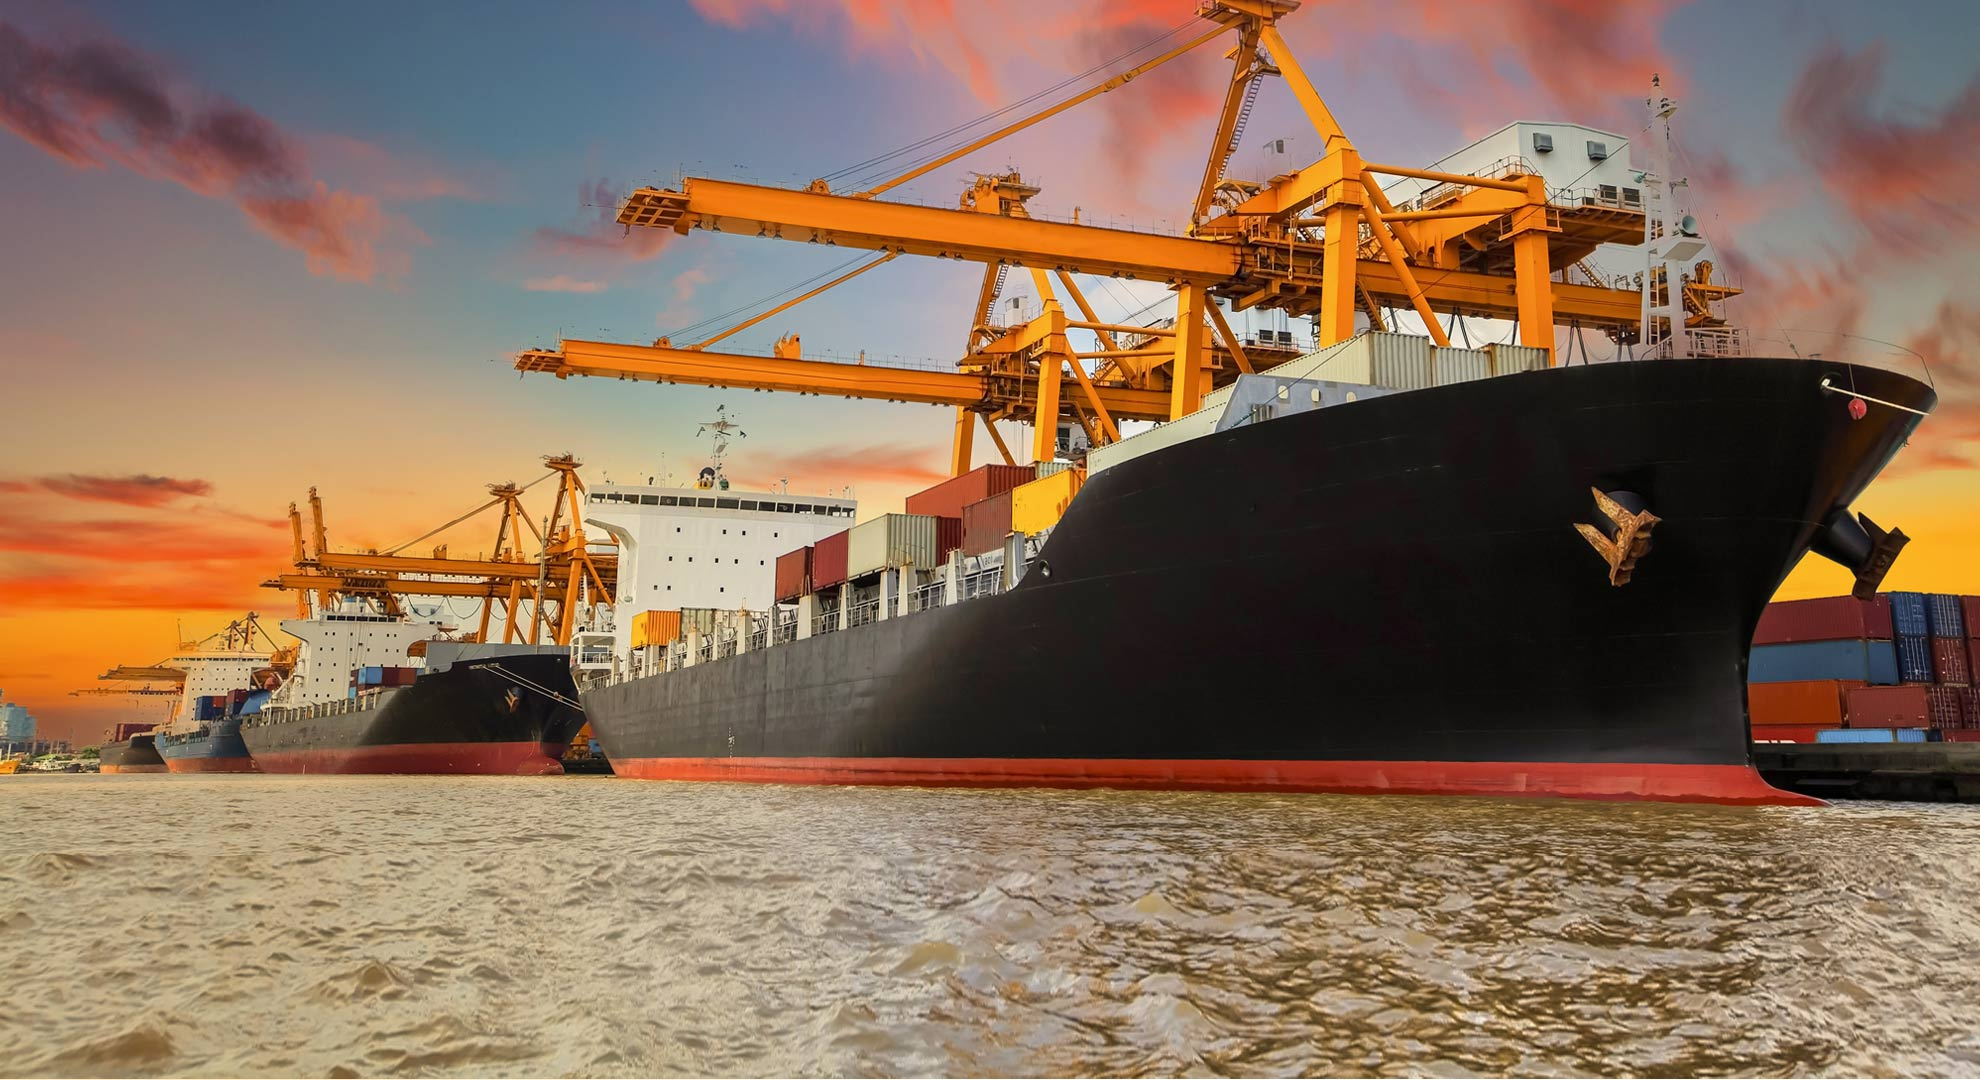 Nigeria's Maritime Industry: On path to sustainable growth